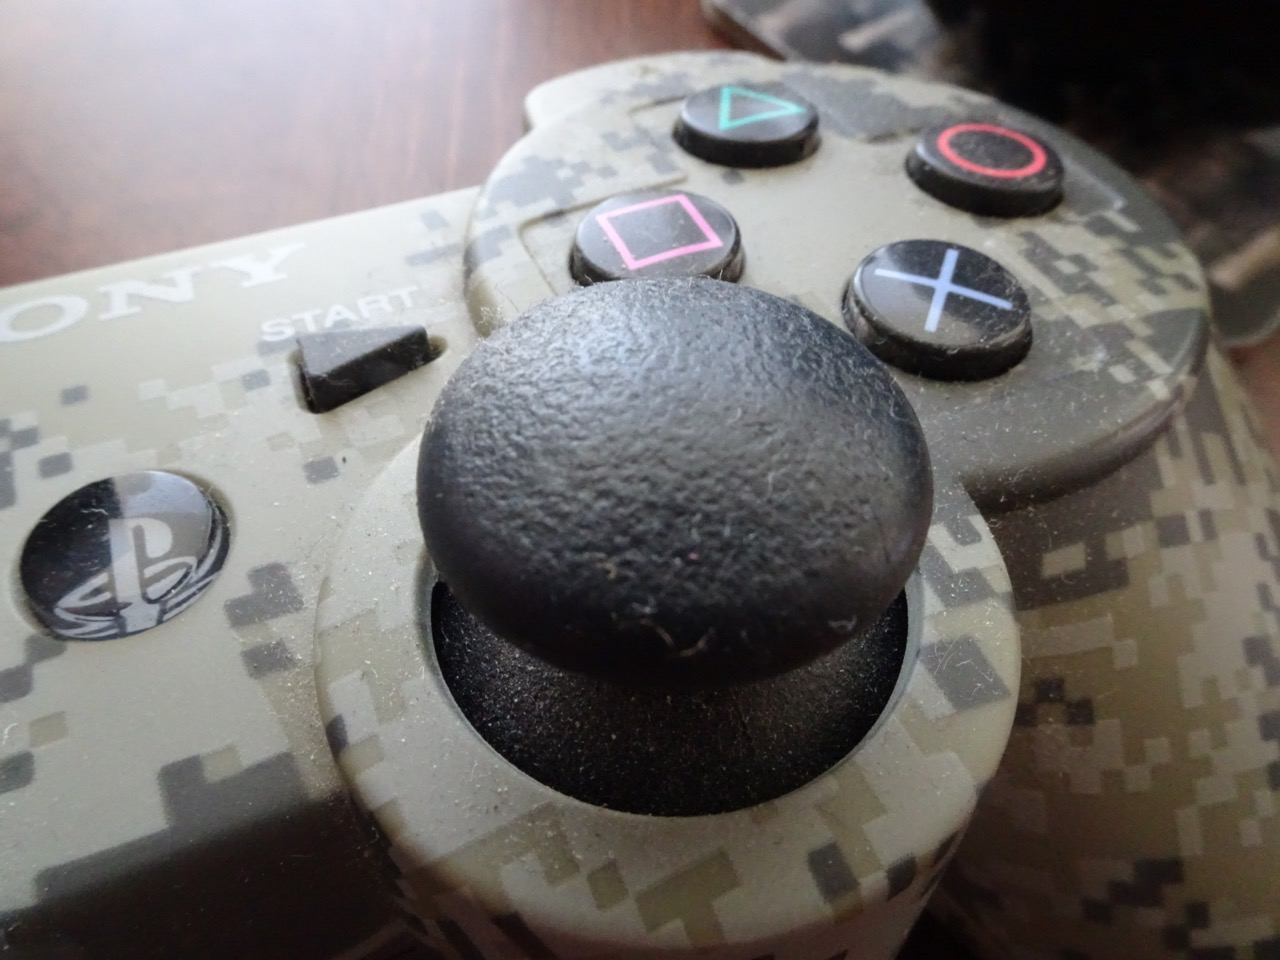 Cleaning the sticky PlayStation controller analogue thumb sticks